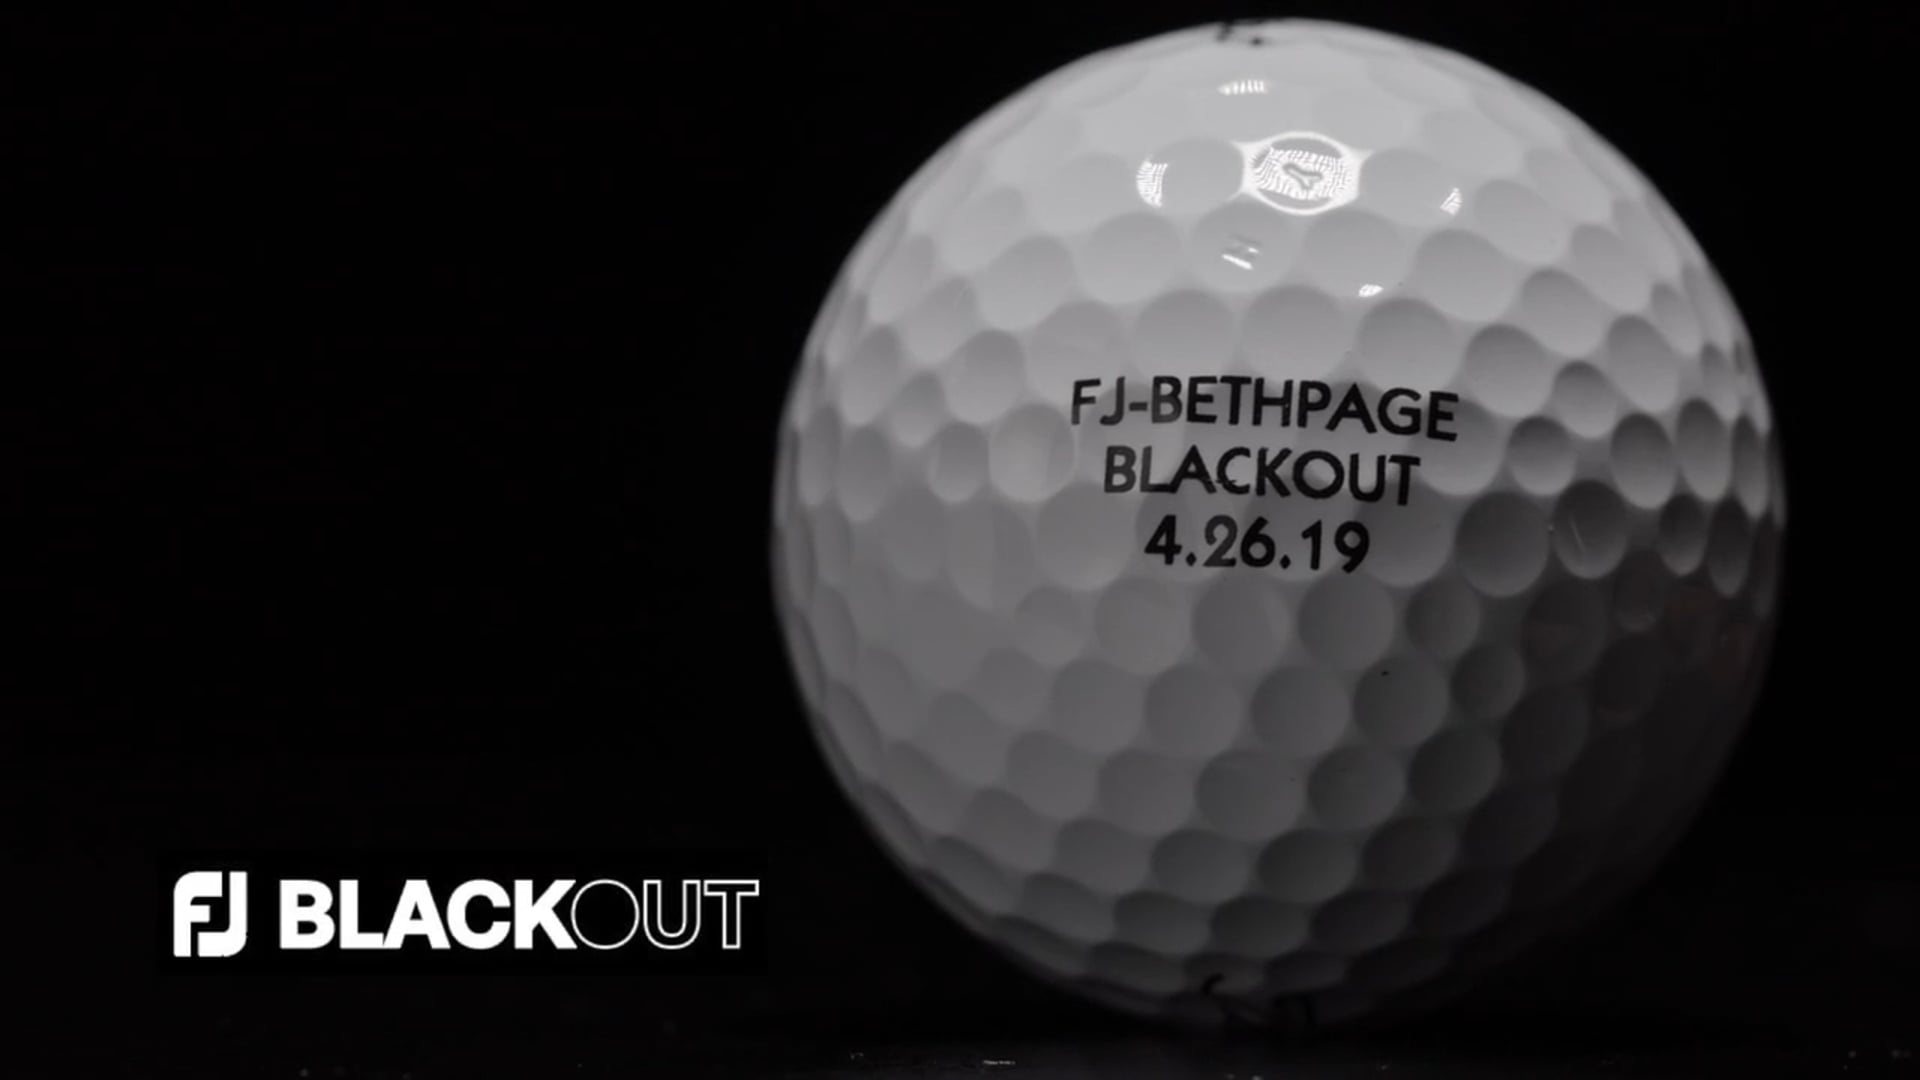 (Live Event Coverage) Footjoy Bethpage Blackout Hero Video